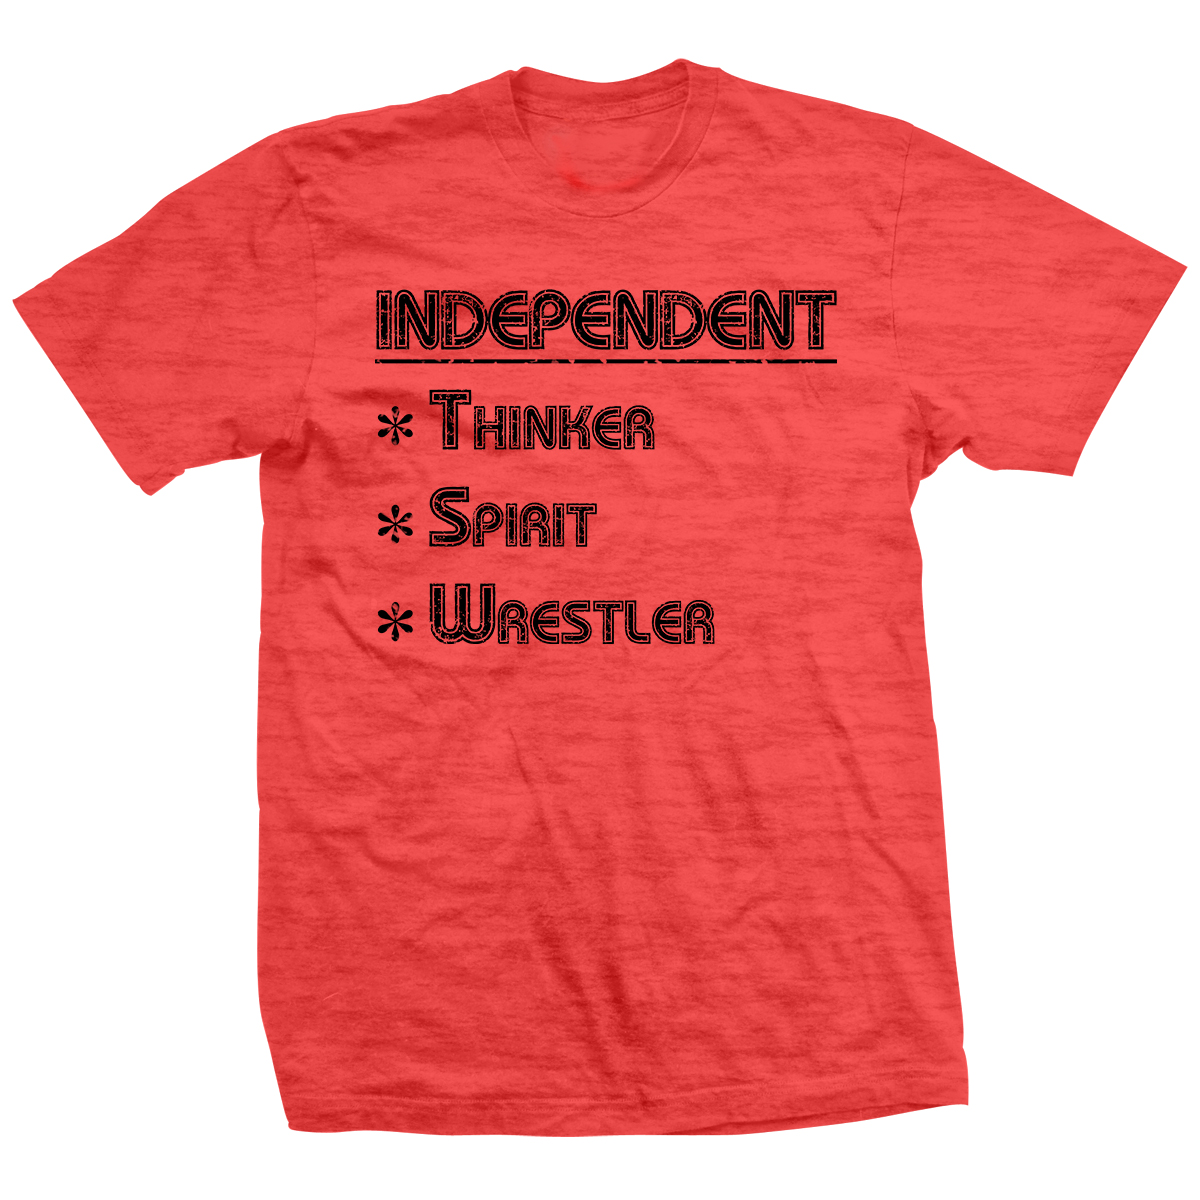 Colt Cabana Independent T-shirt